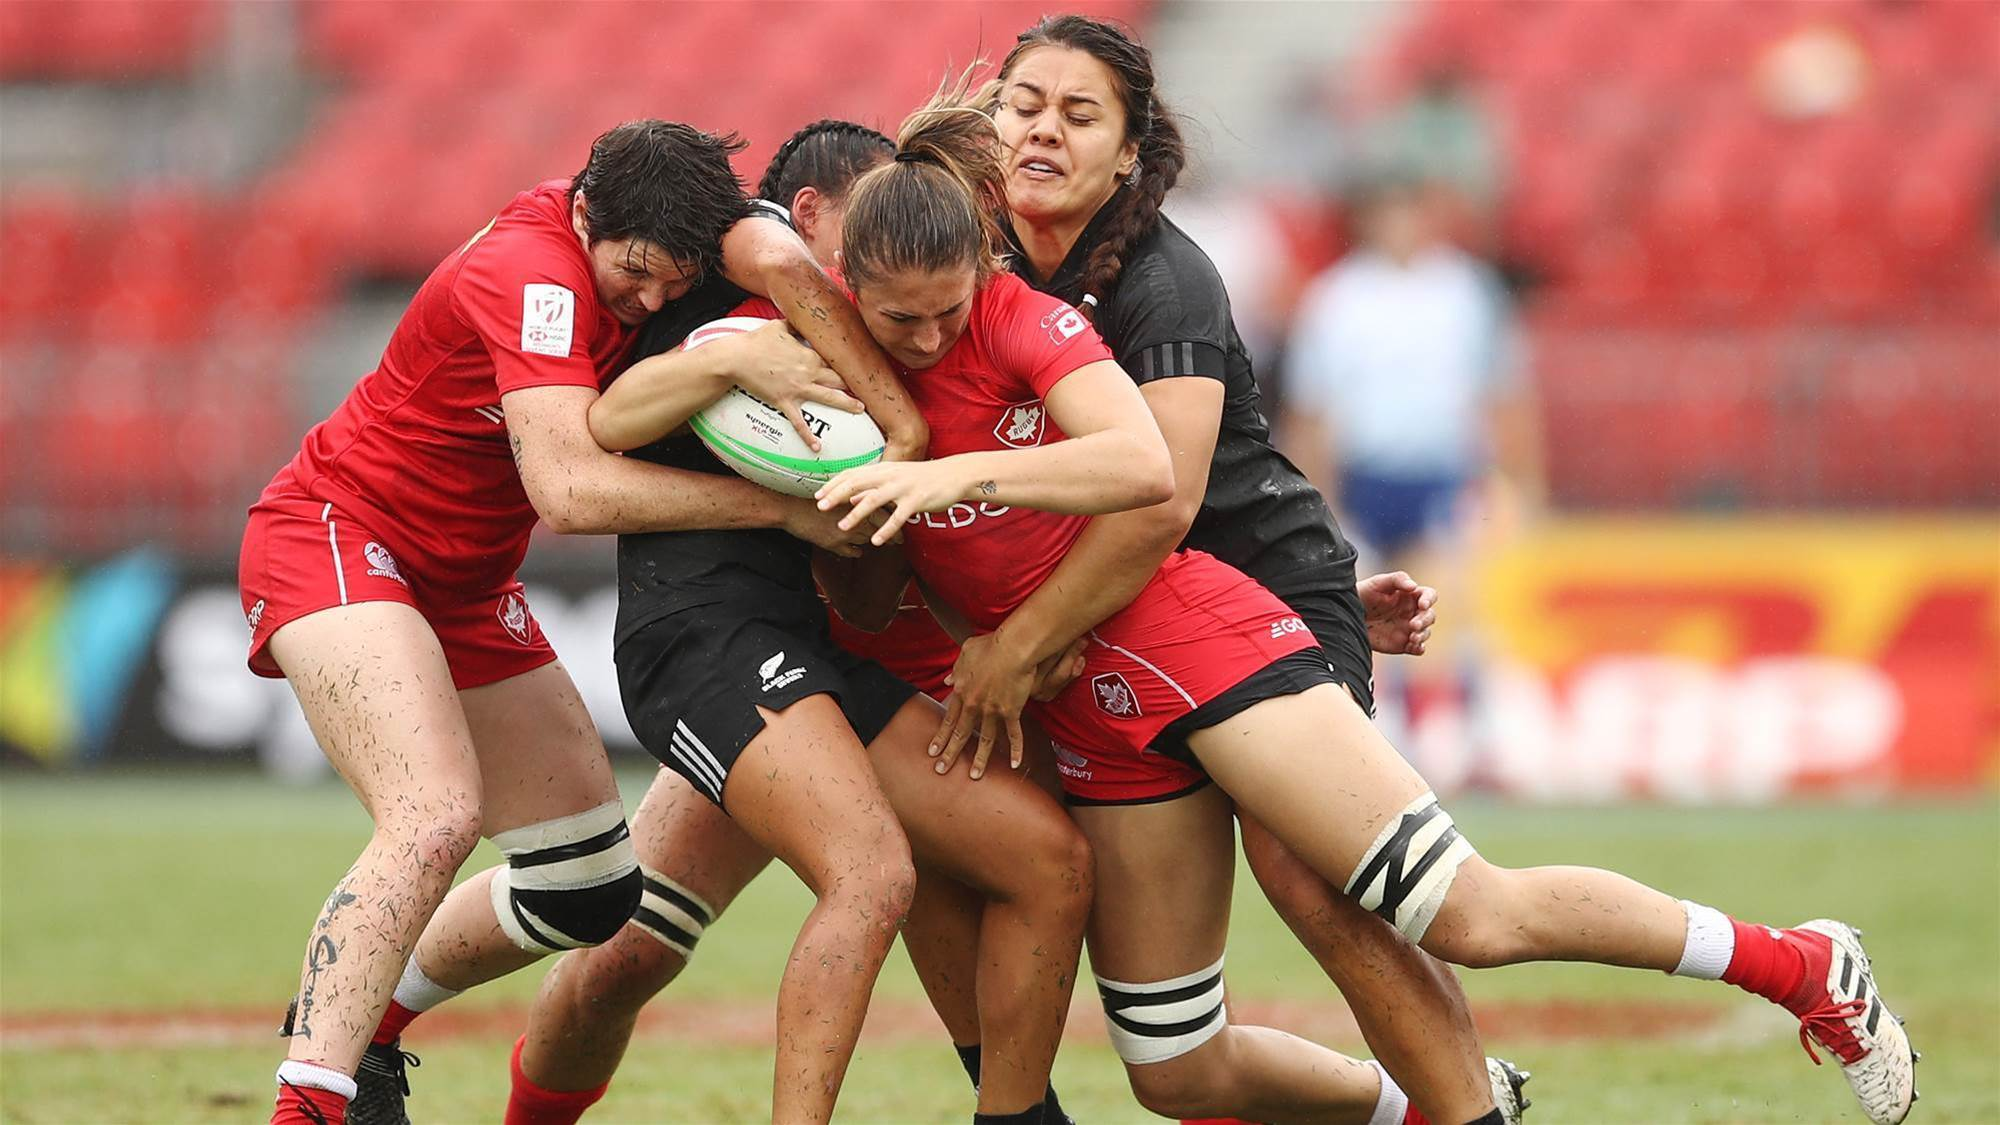 Sydney 7s down to pointy end